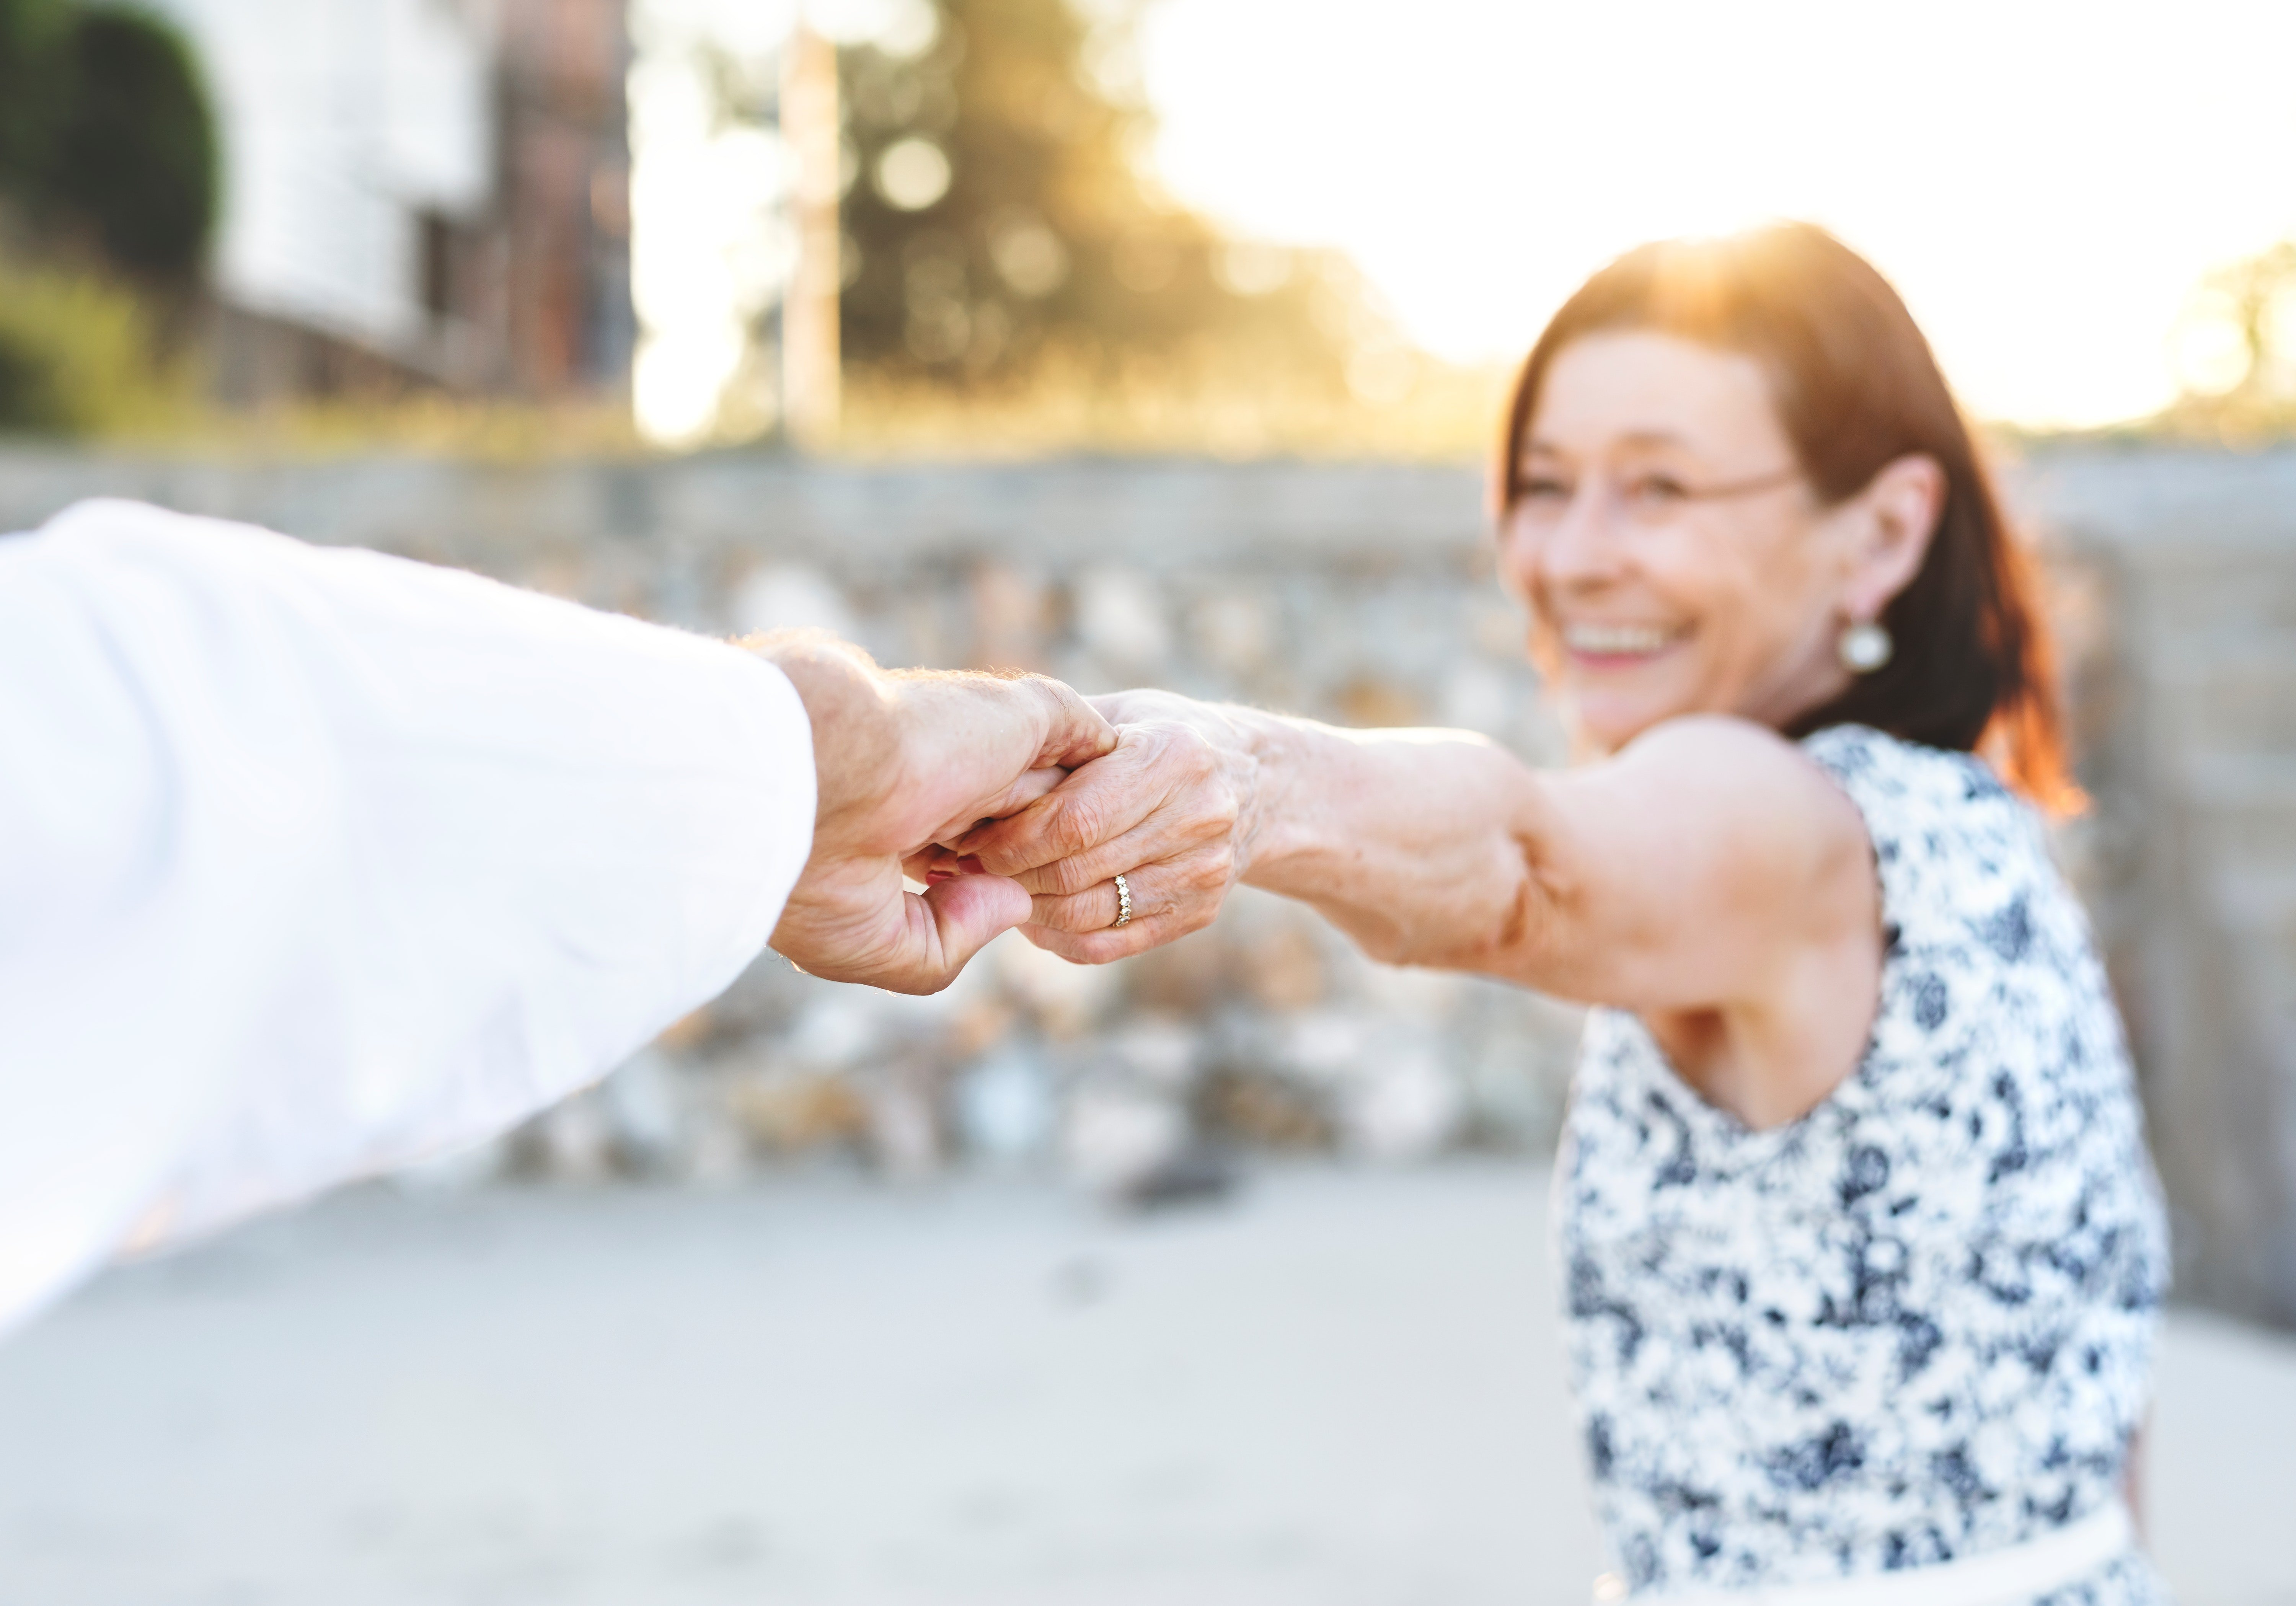 A pair of old man and woman holding hands. | Source: Pexels